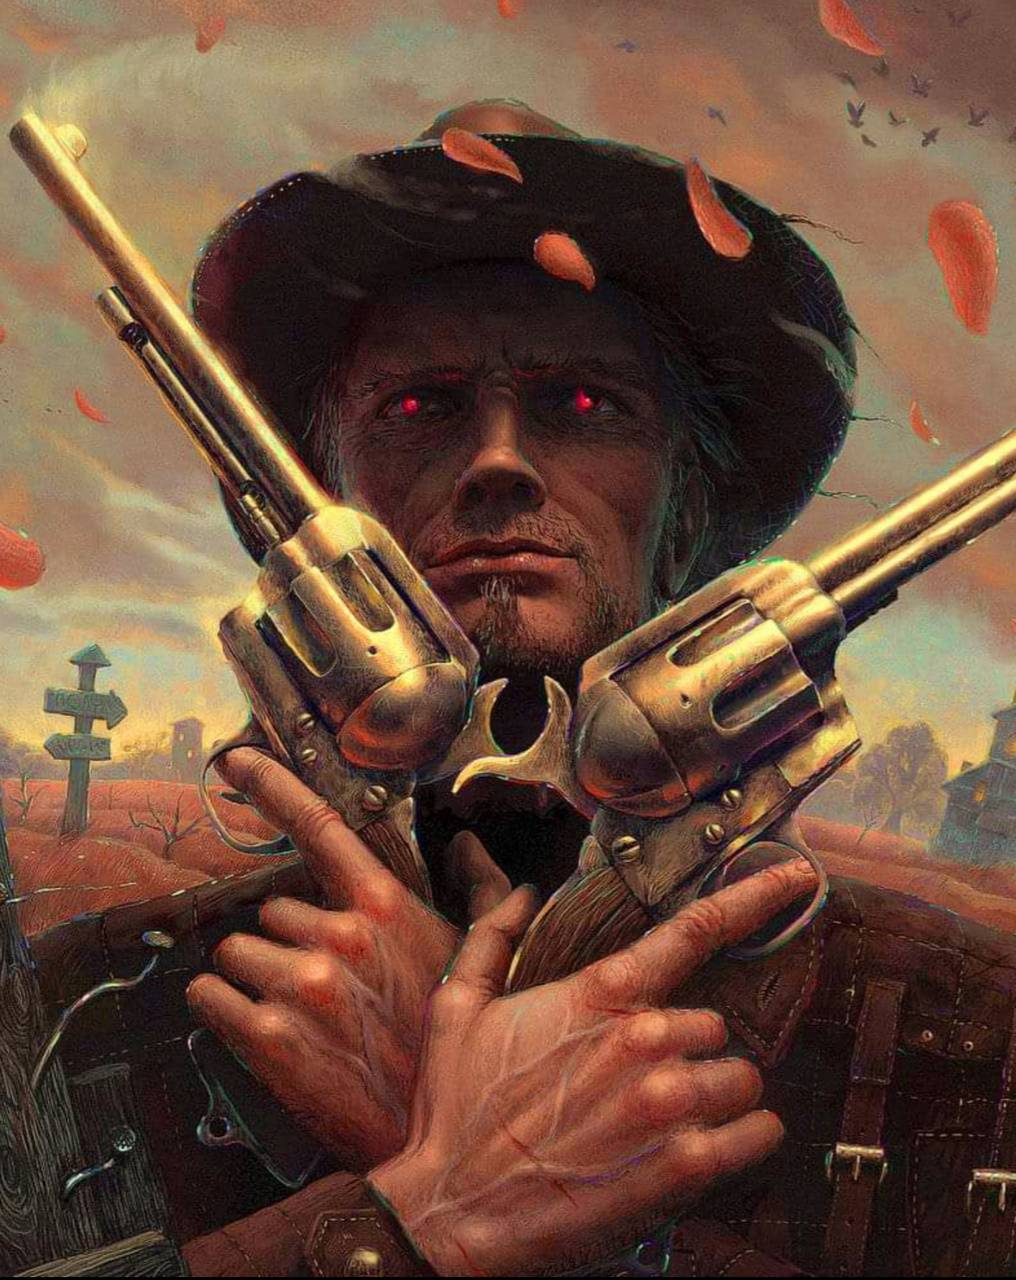 The Gunslinger Wallpaper By Iscreaminc Bb Free On Zedge